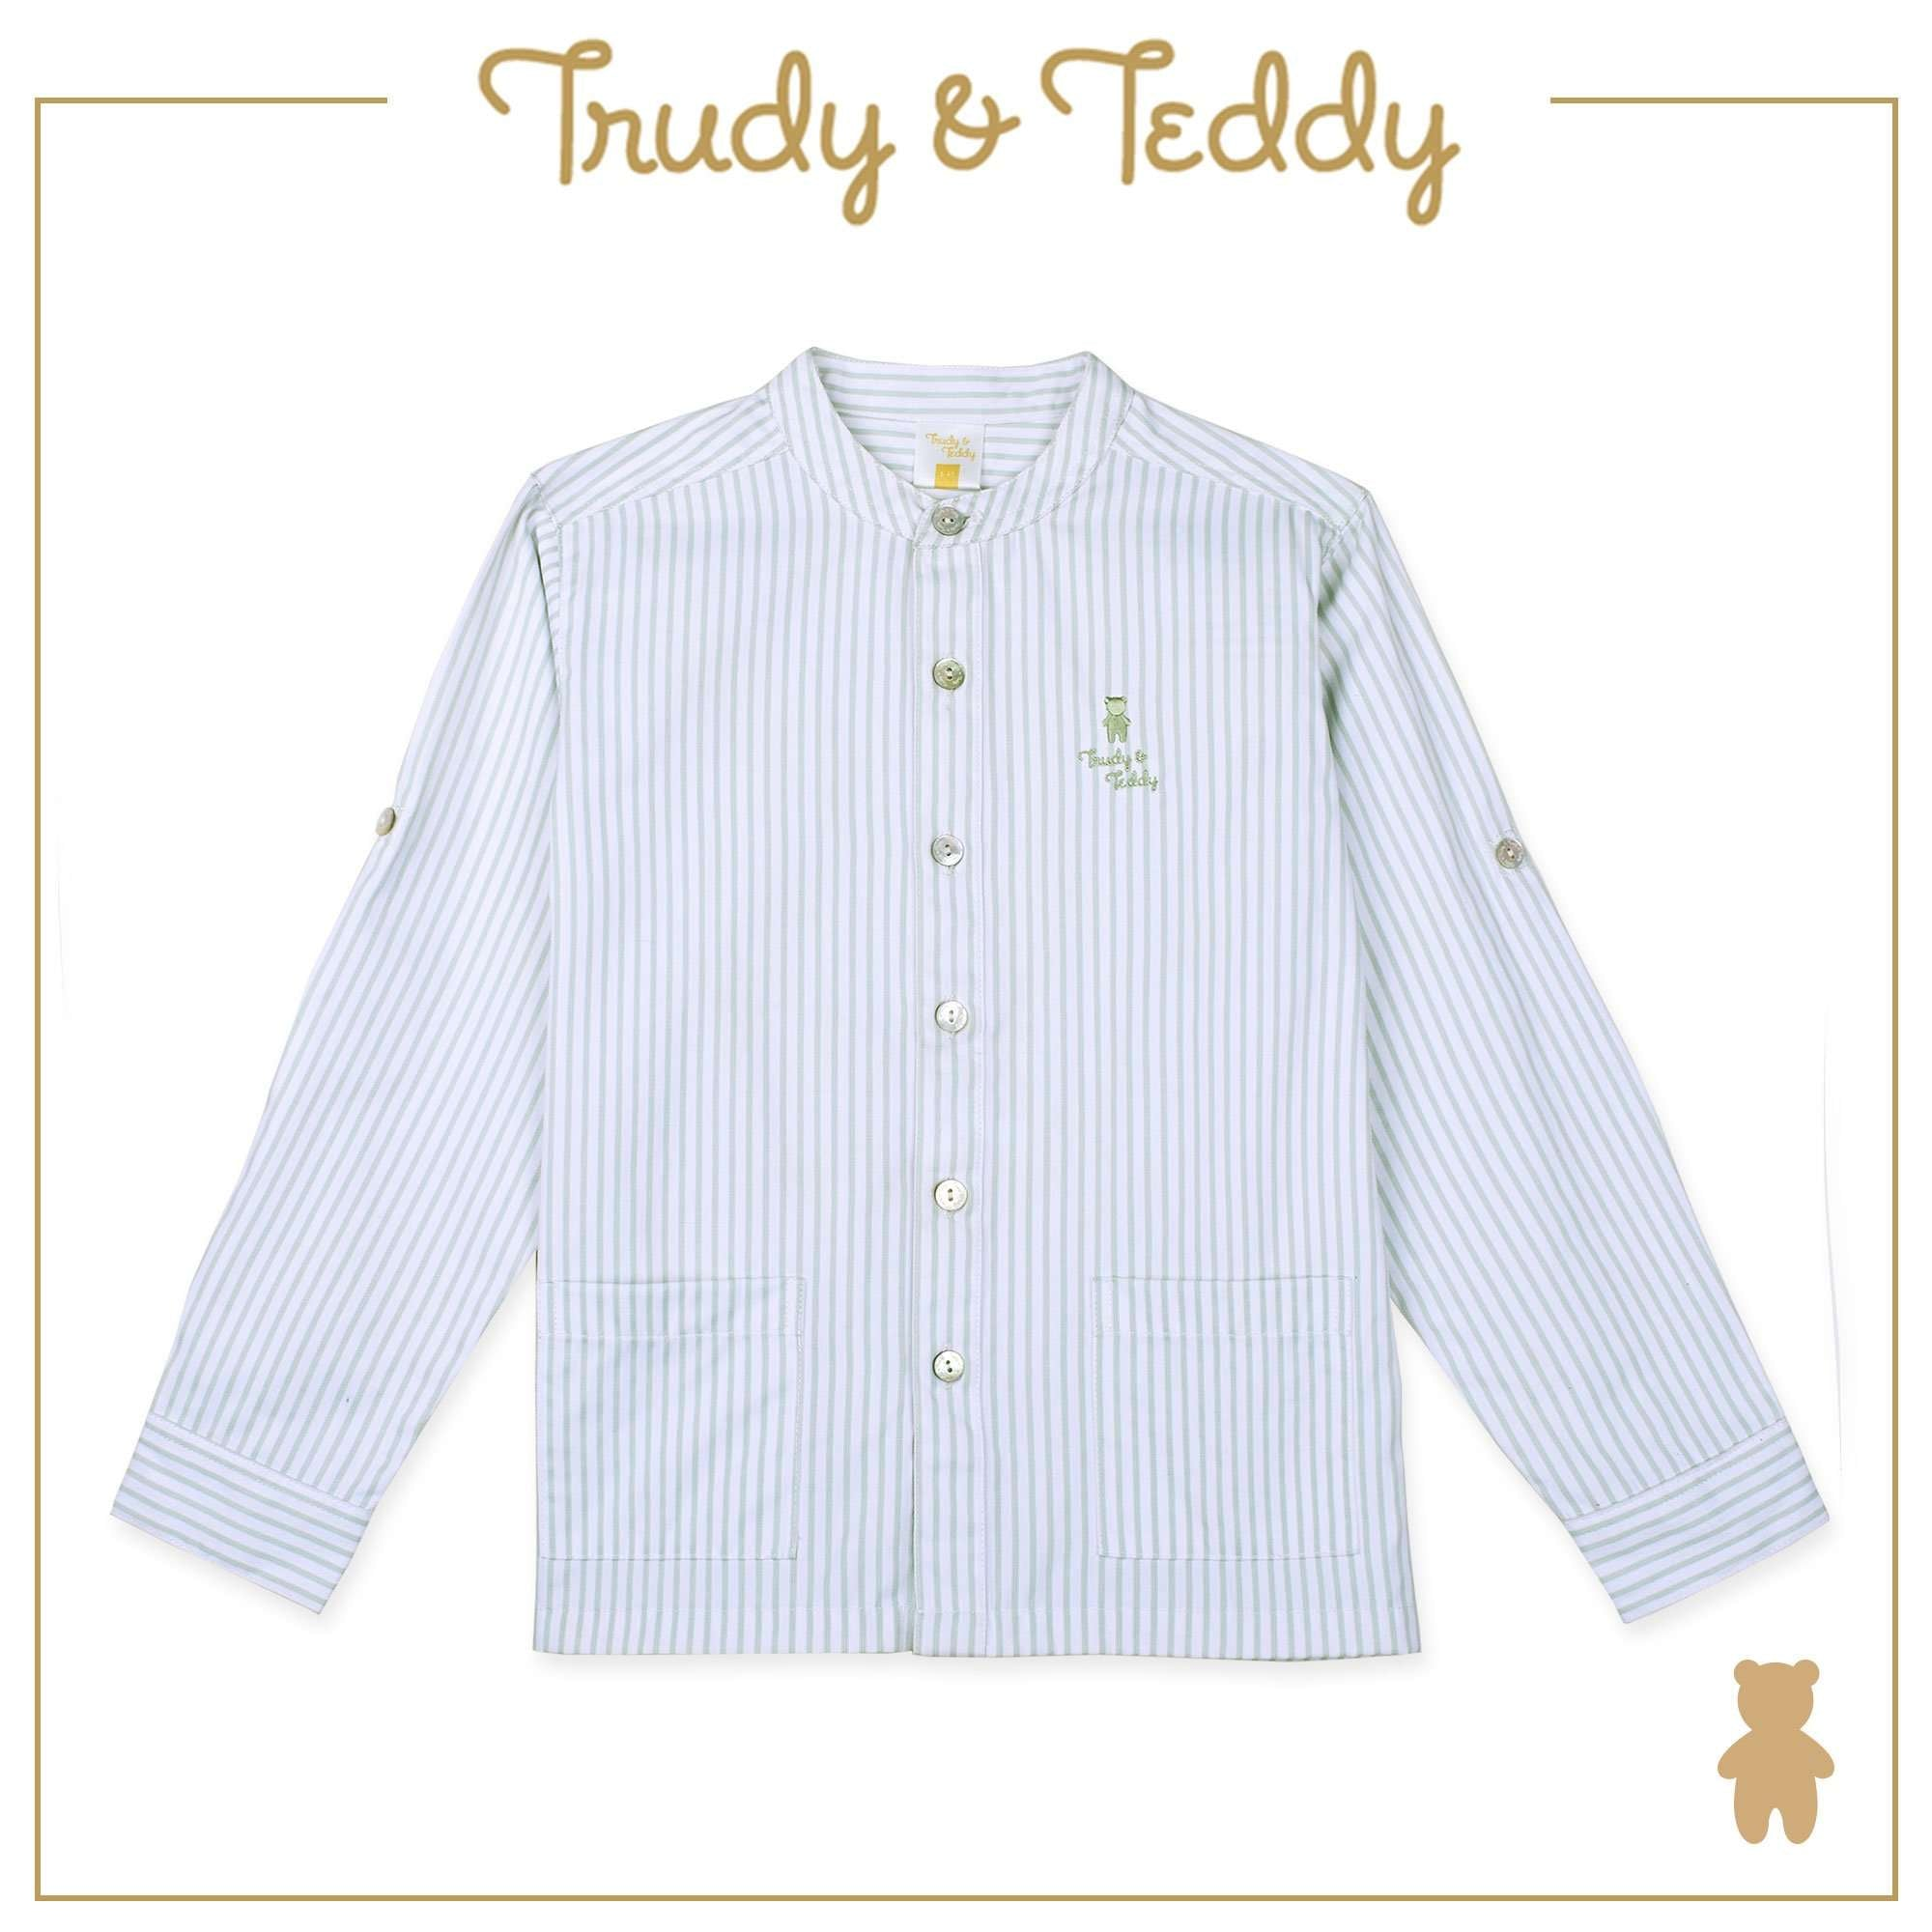 Trudy & Teddy Baby to Kid Boy Long Sleeve Shirt - Light Green T911001-1507-N1 : Buy Trudy & Teddy online at CMG.MY